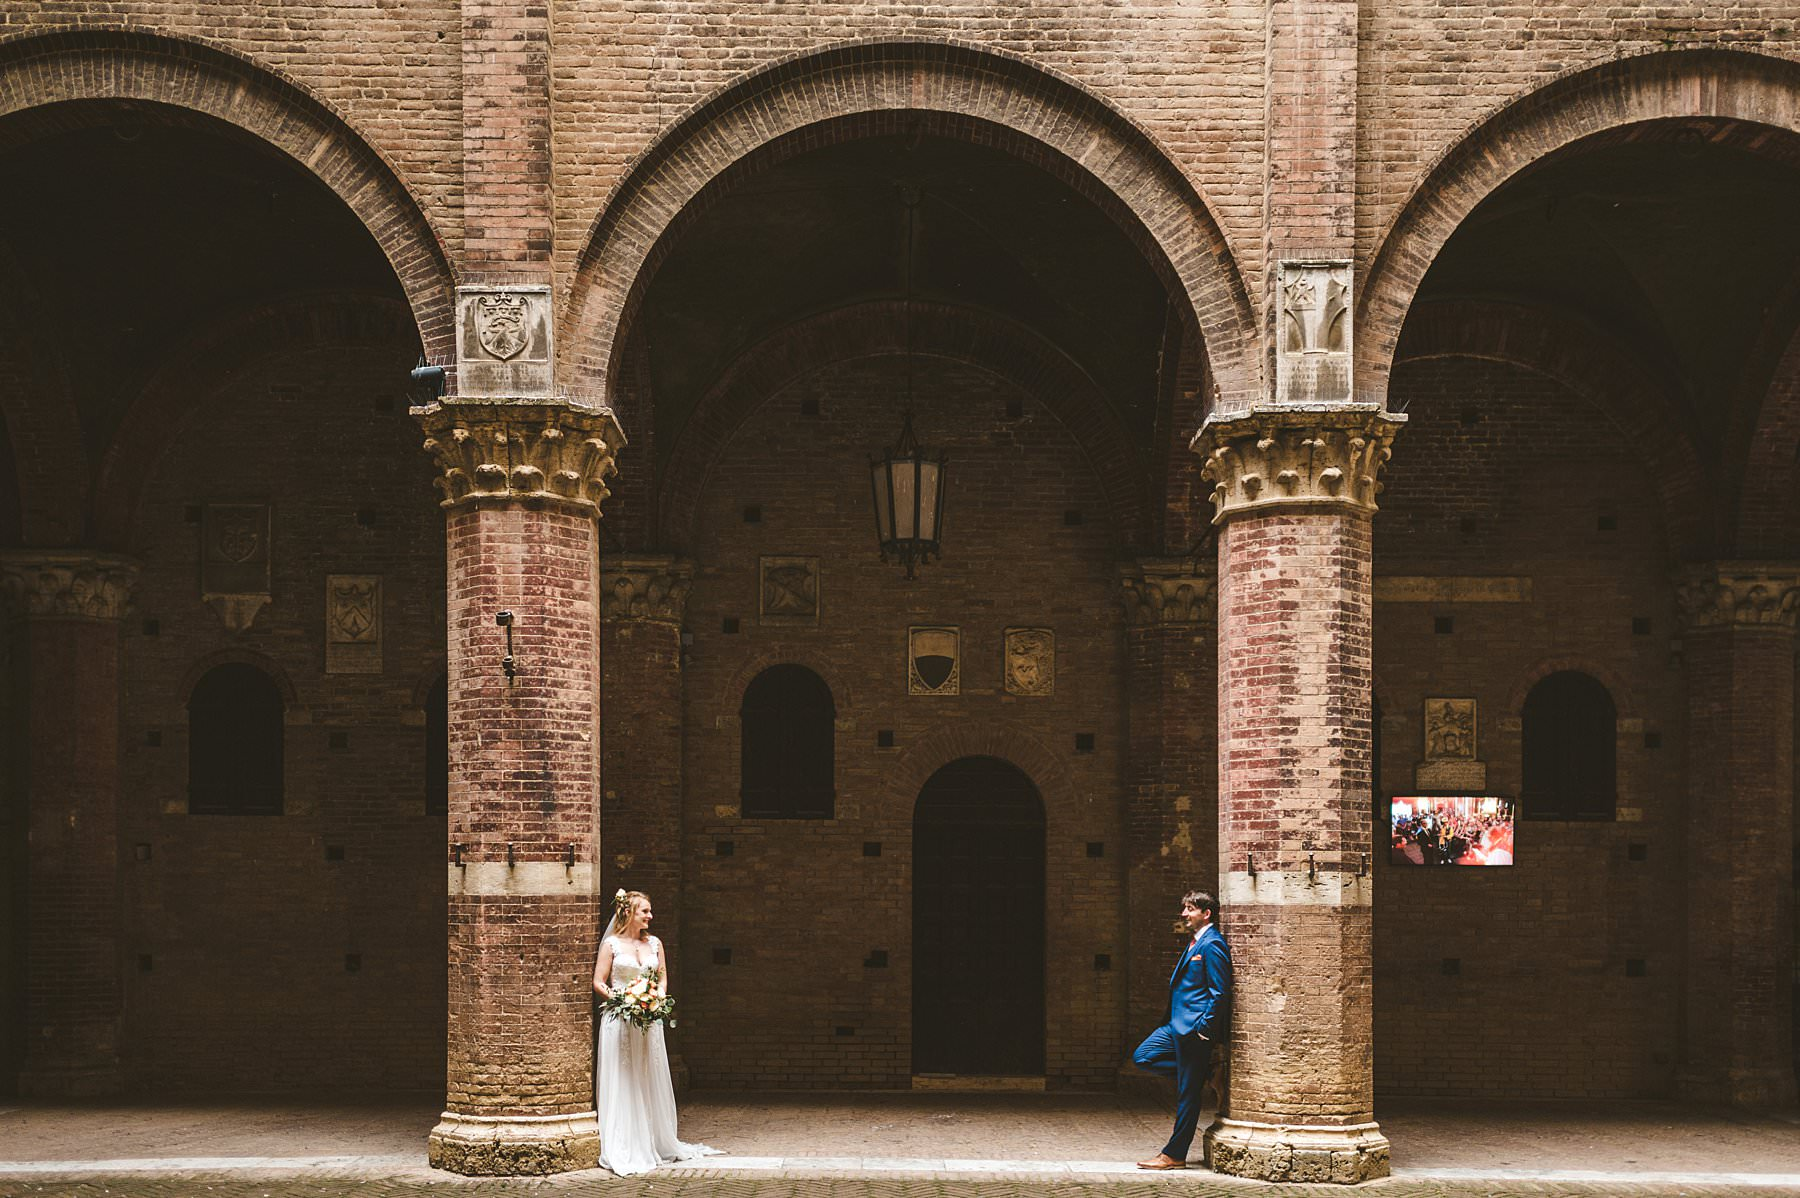 Lovely bride and groom elopement wedding photo at Siena Town Hall in the heart of the city